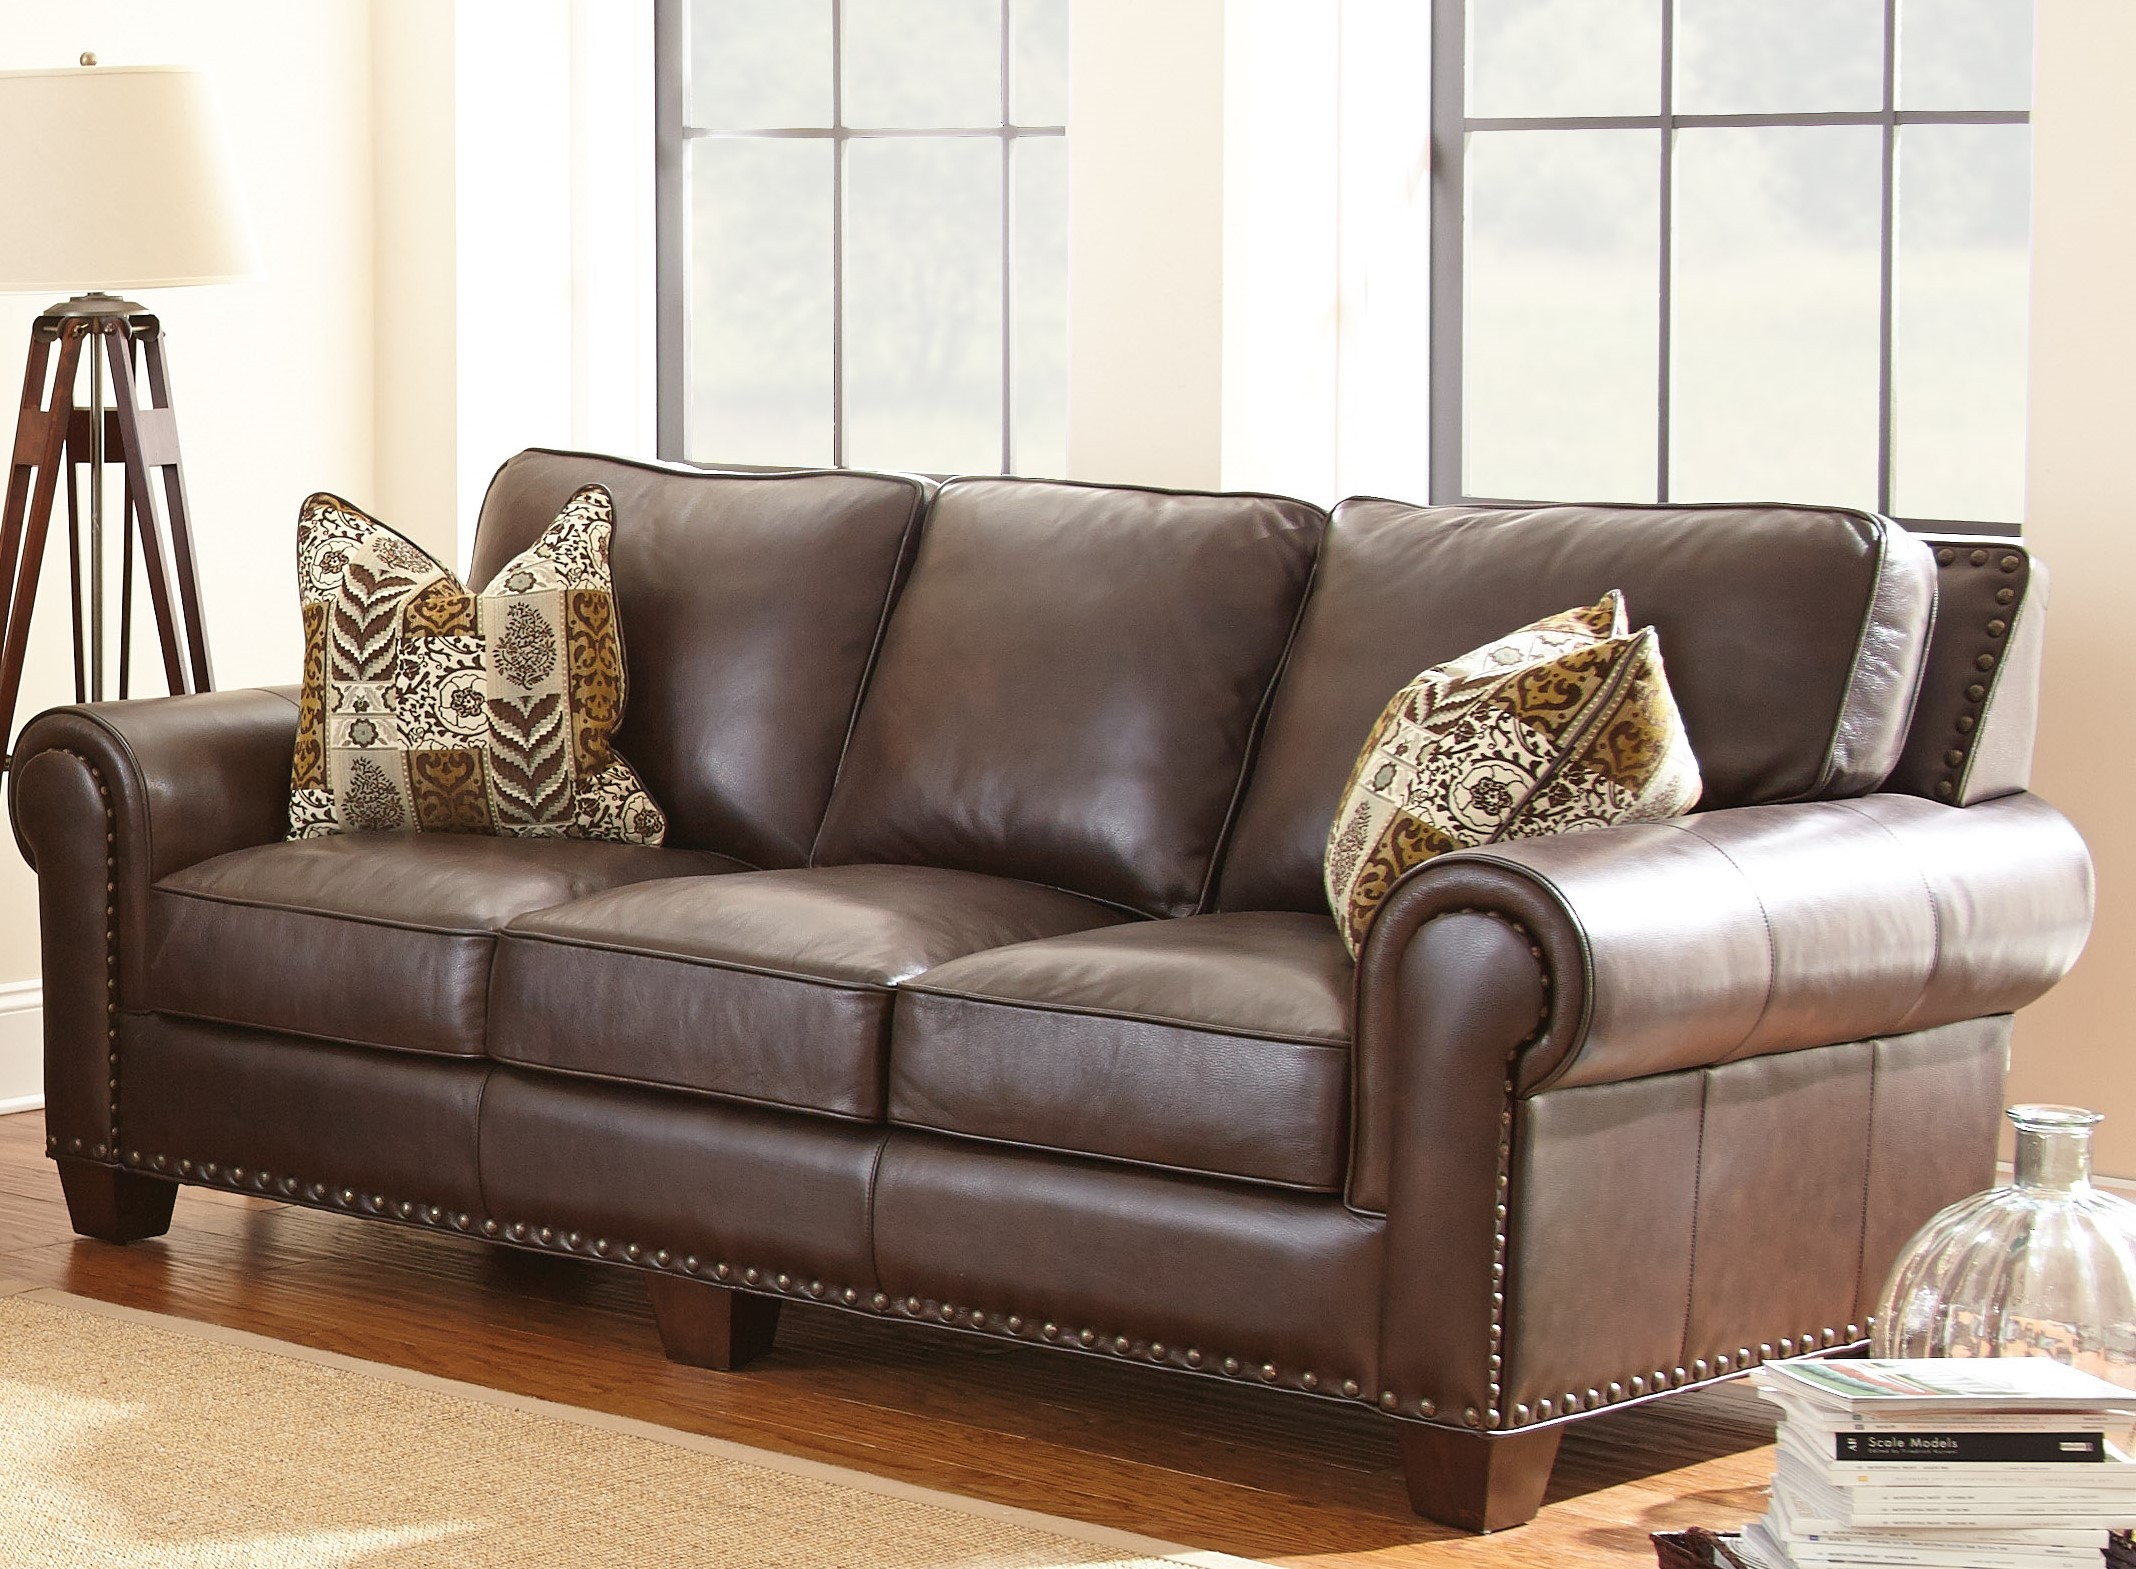 Decorative Pillows For A Leather Couch : Escher Top Grain Leather Sofa with 2 Accent Pillows from Steve Silver (SR810S) Coleman Furniture